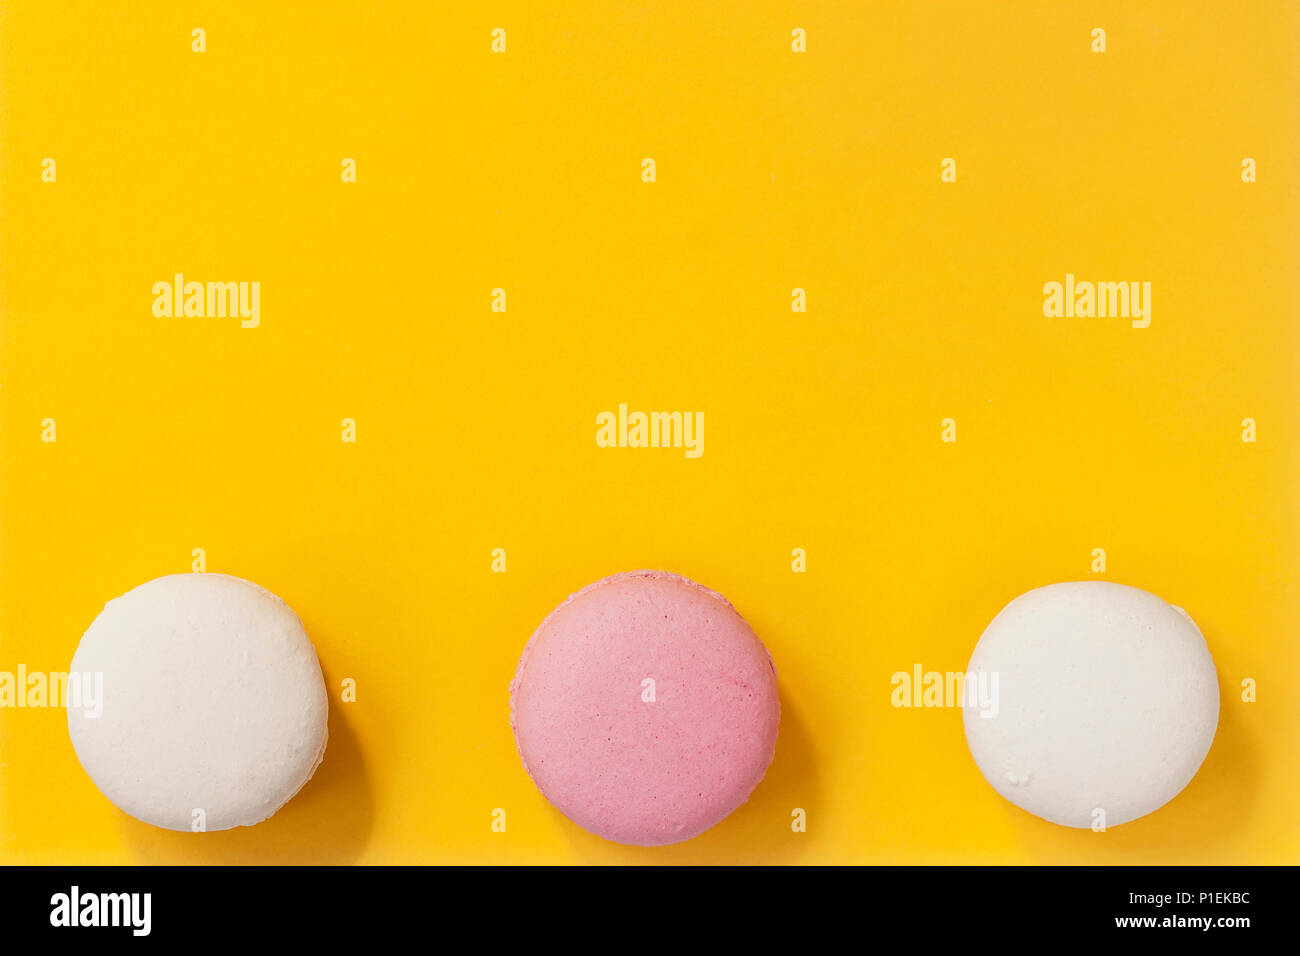 Three macaroons of pink and white colors on yellow background top three macaroons of pink and white colors on yellow background top view romantic morning gift for beloved on easter valentins mothers womens day negle Choice Image